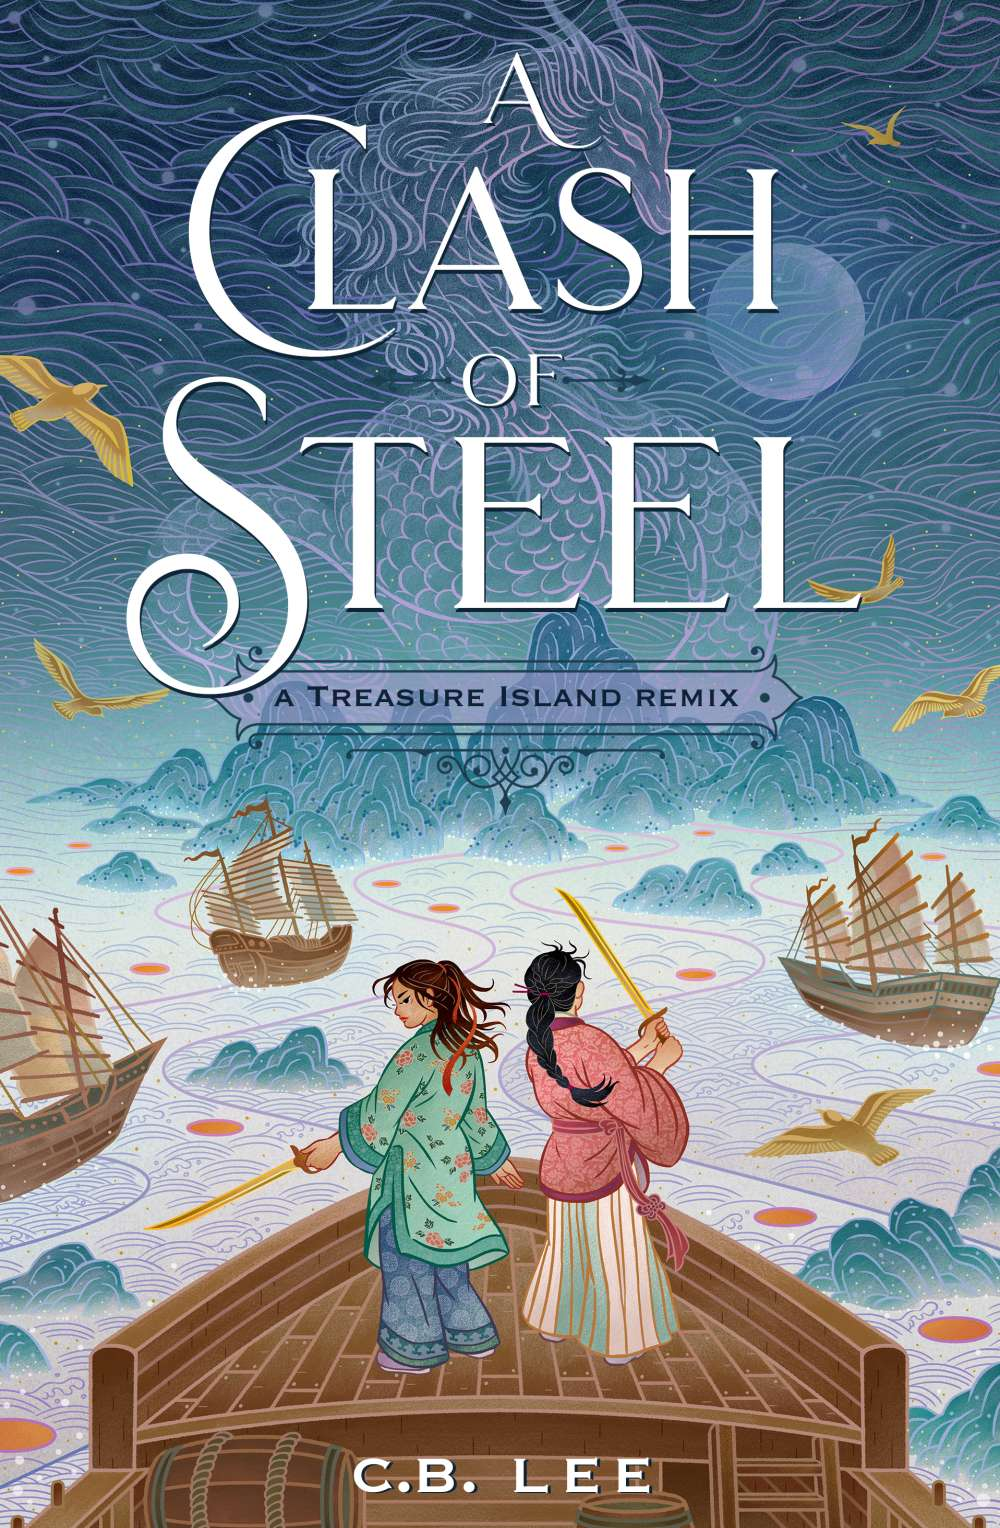 A Clash of Steel by C.B. Lee